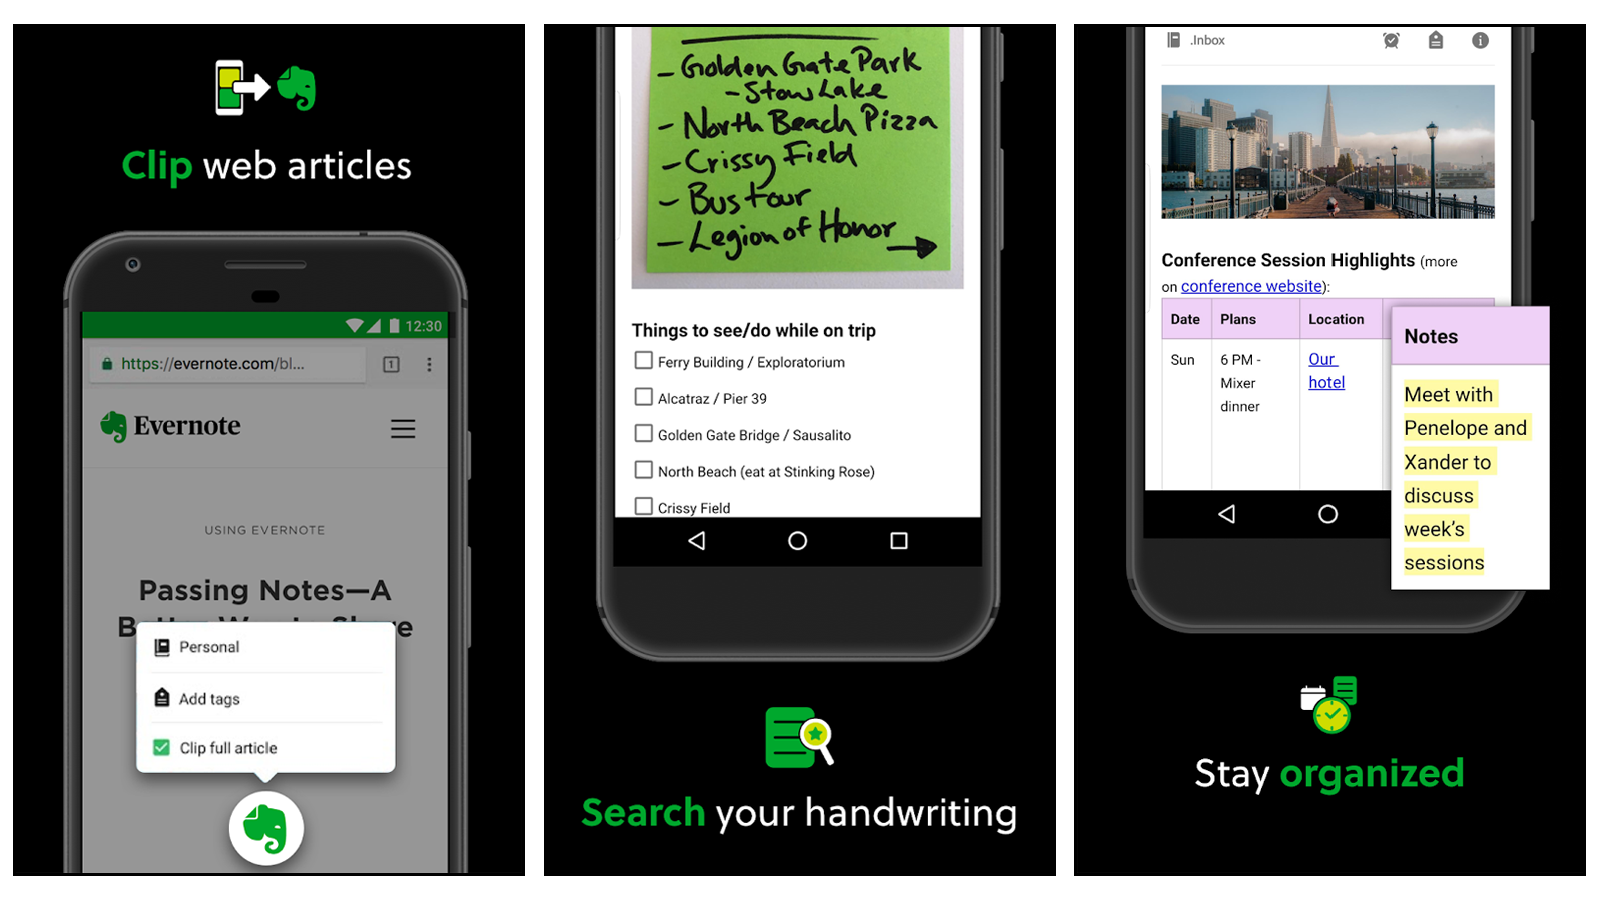 Evernote app for taking notes, or photographing and digitizing notes